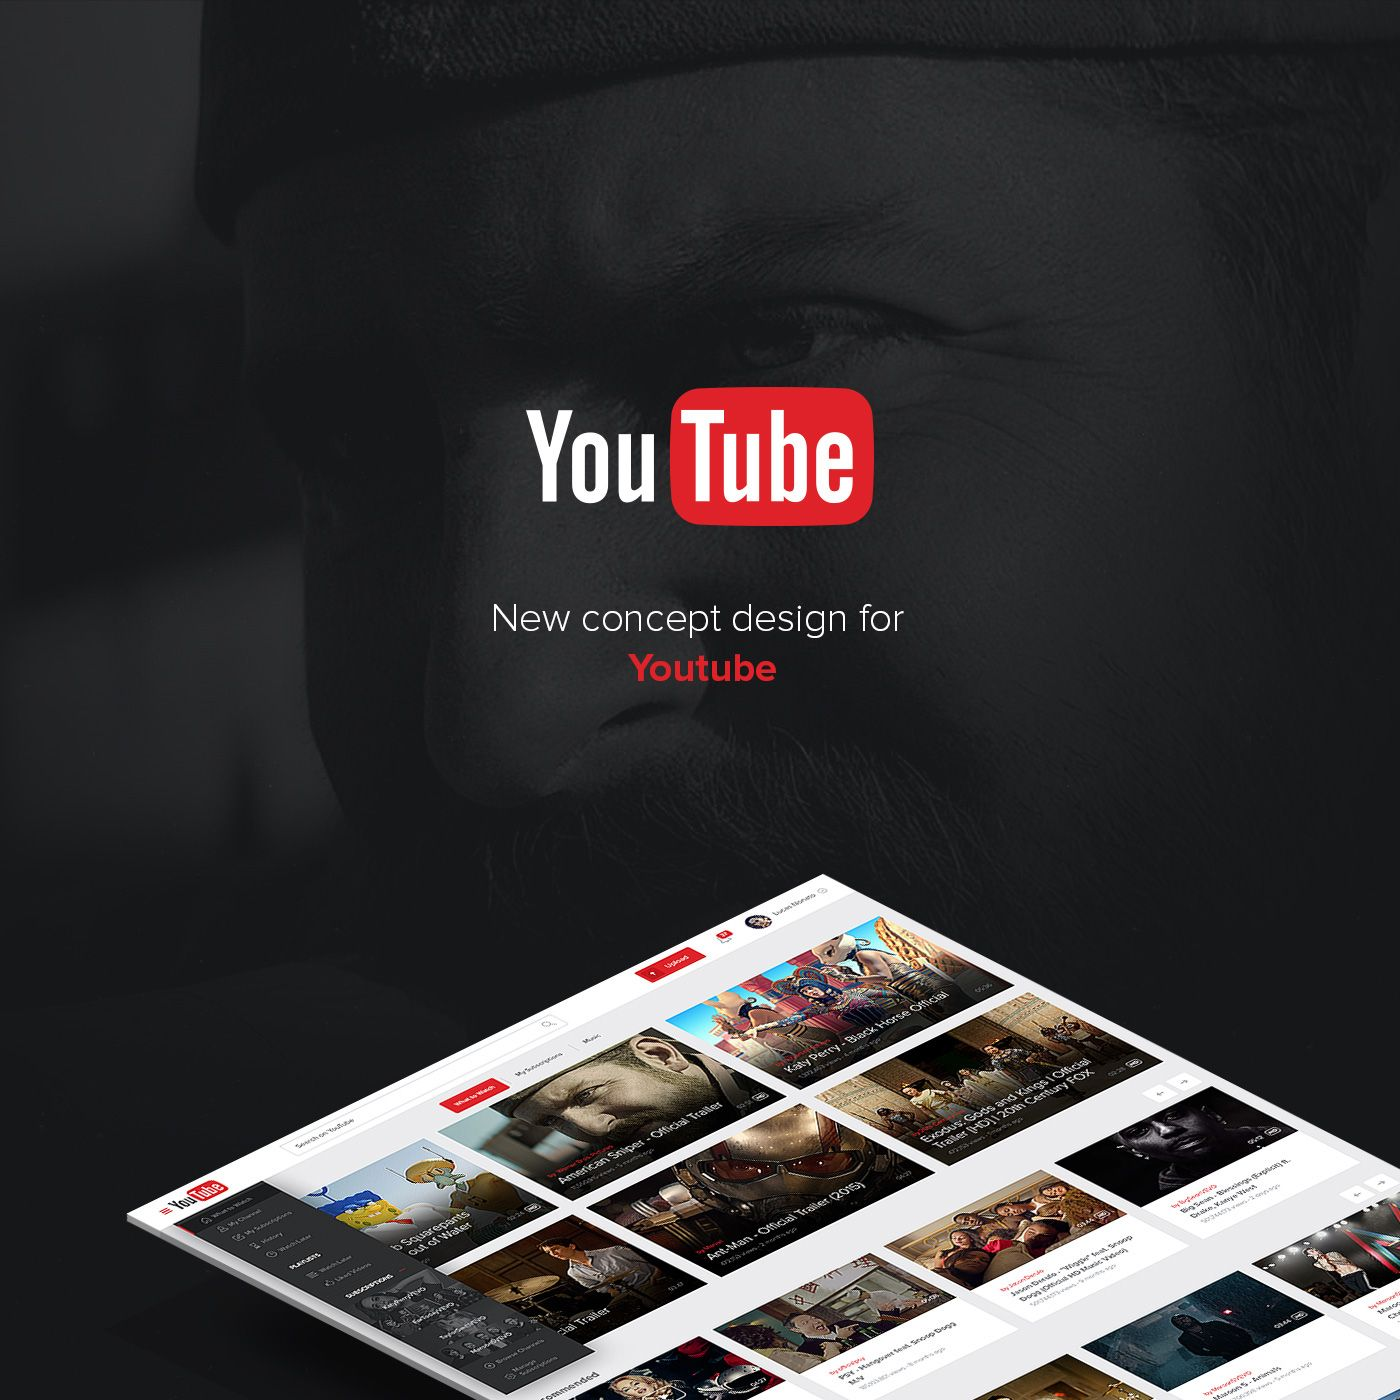 Redesign(This is no official project)Innovate without losing the identity . That was my goal, to make the giant YouTube to modernize without losing any functionality and not cause any impact on users.